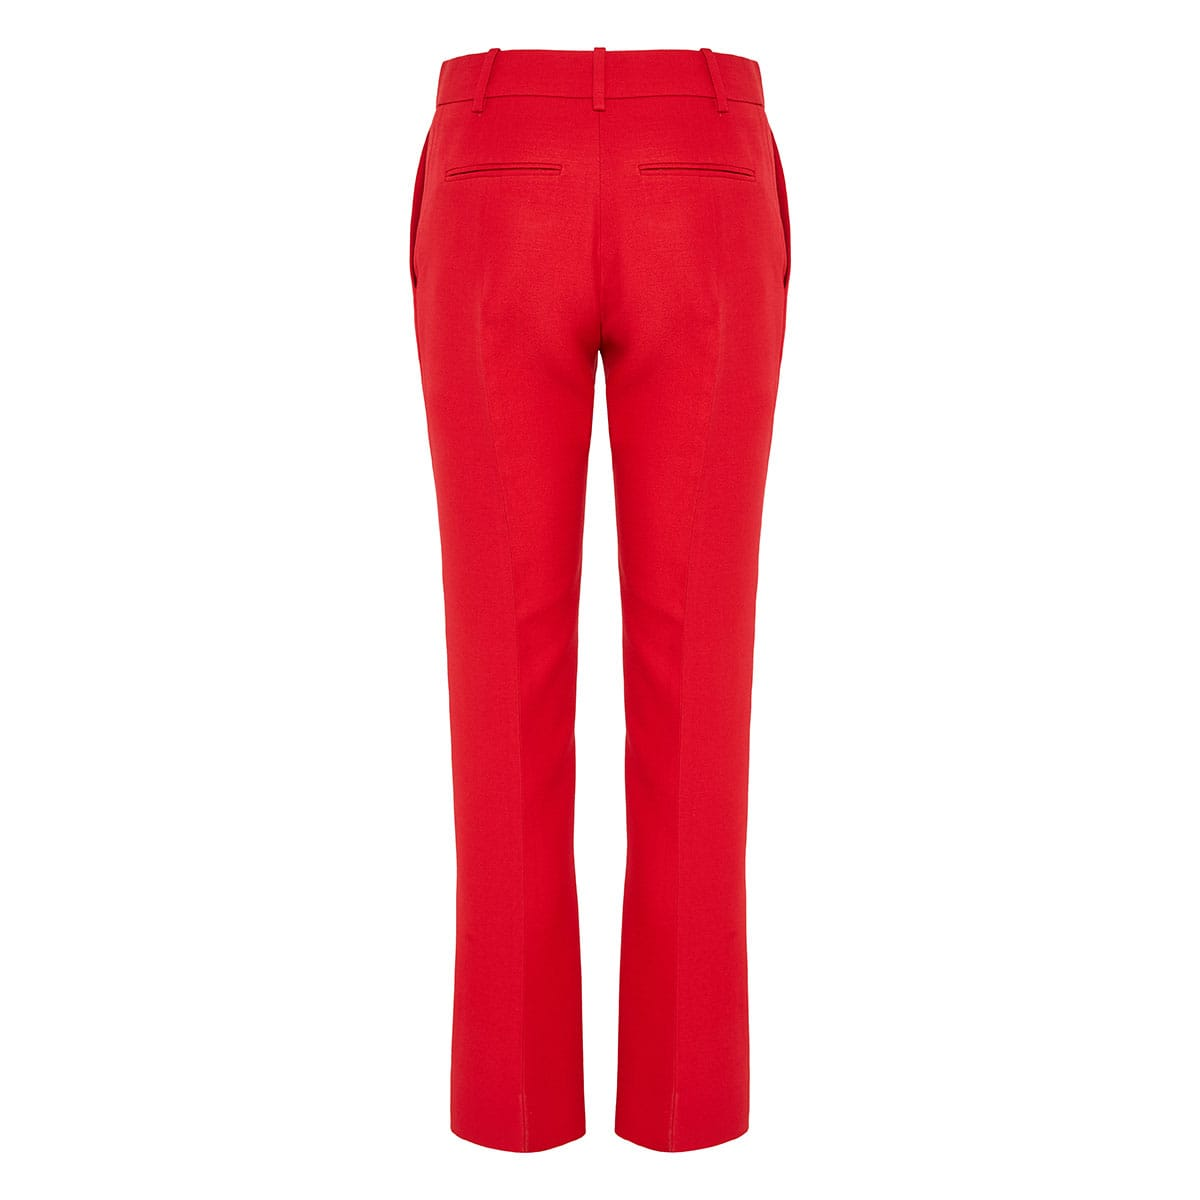 Ankle-length tailored trousers